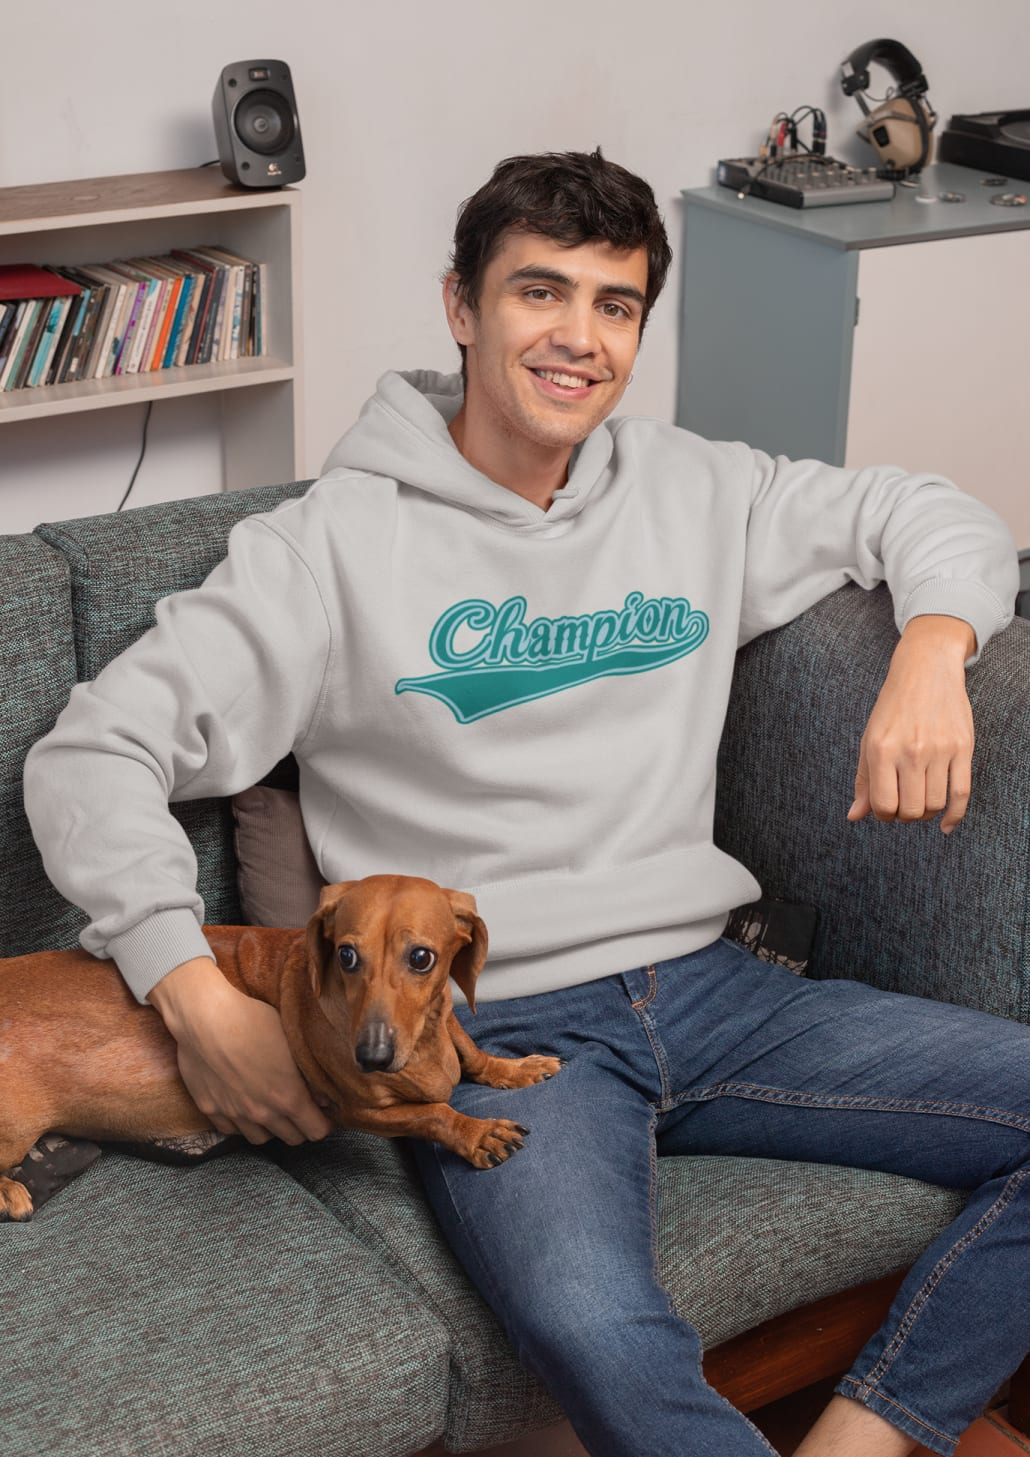 #boy with gray hoodie and cute dog